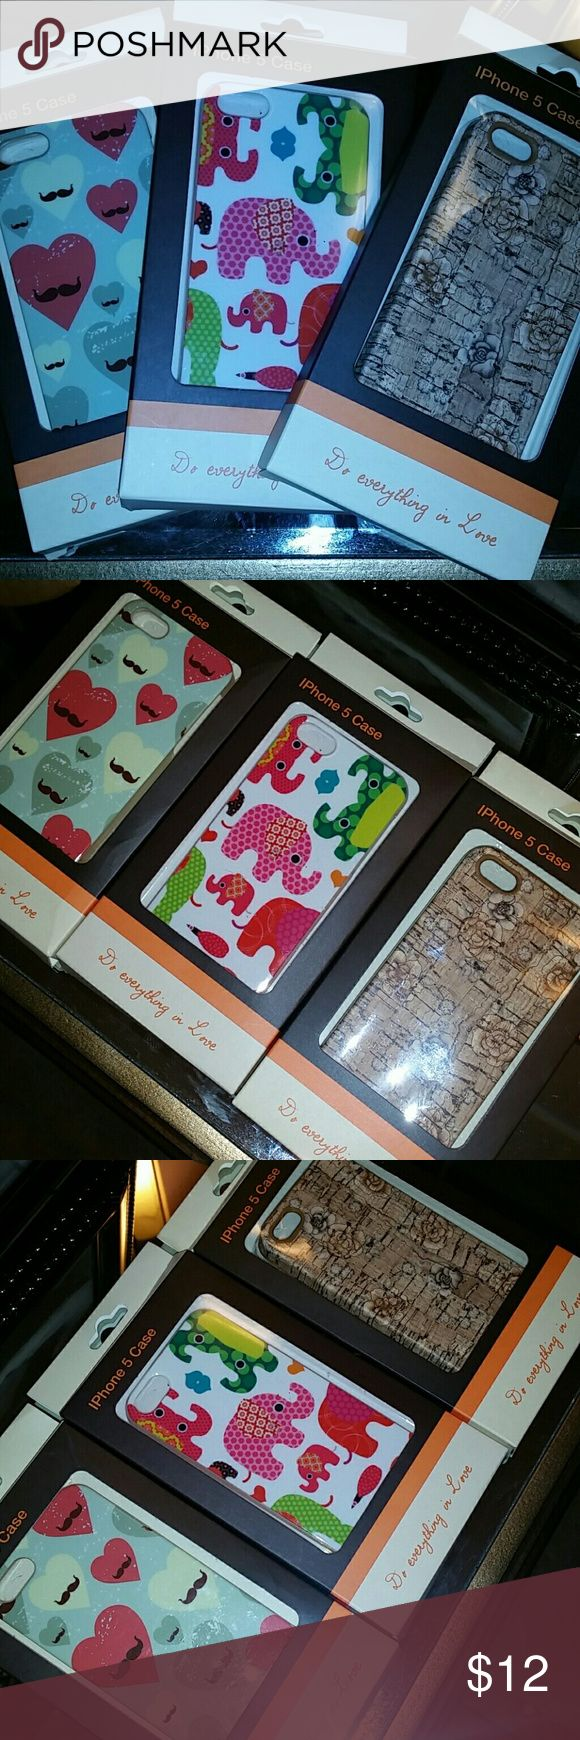 3 IPhone 5 cases BNIB elephants, cork, mustache 3 BNIB IPhone 5 cases for sale. One has boho elephants, one has rustic heart mustaches, and one is cork print with lotus flowers (my FAV!). Cute and trendy! do everything in love Other